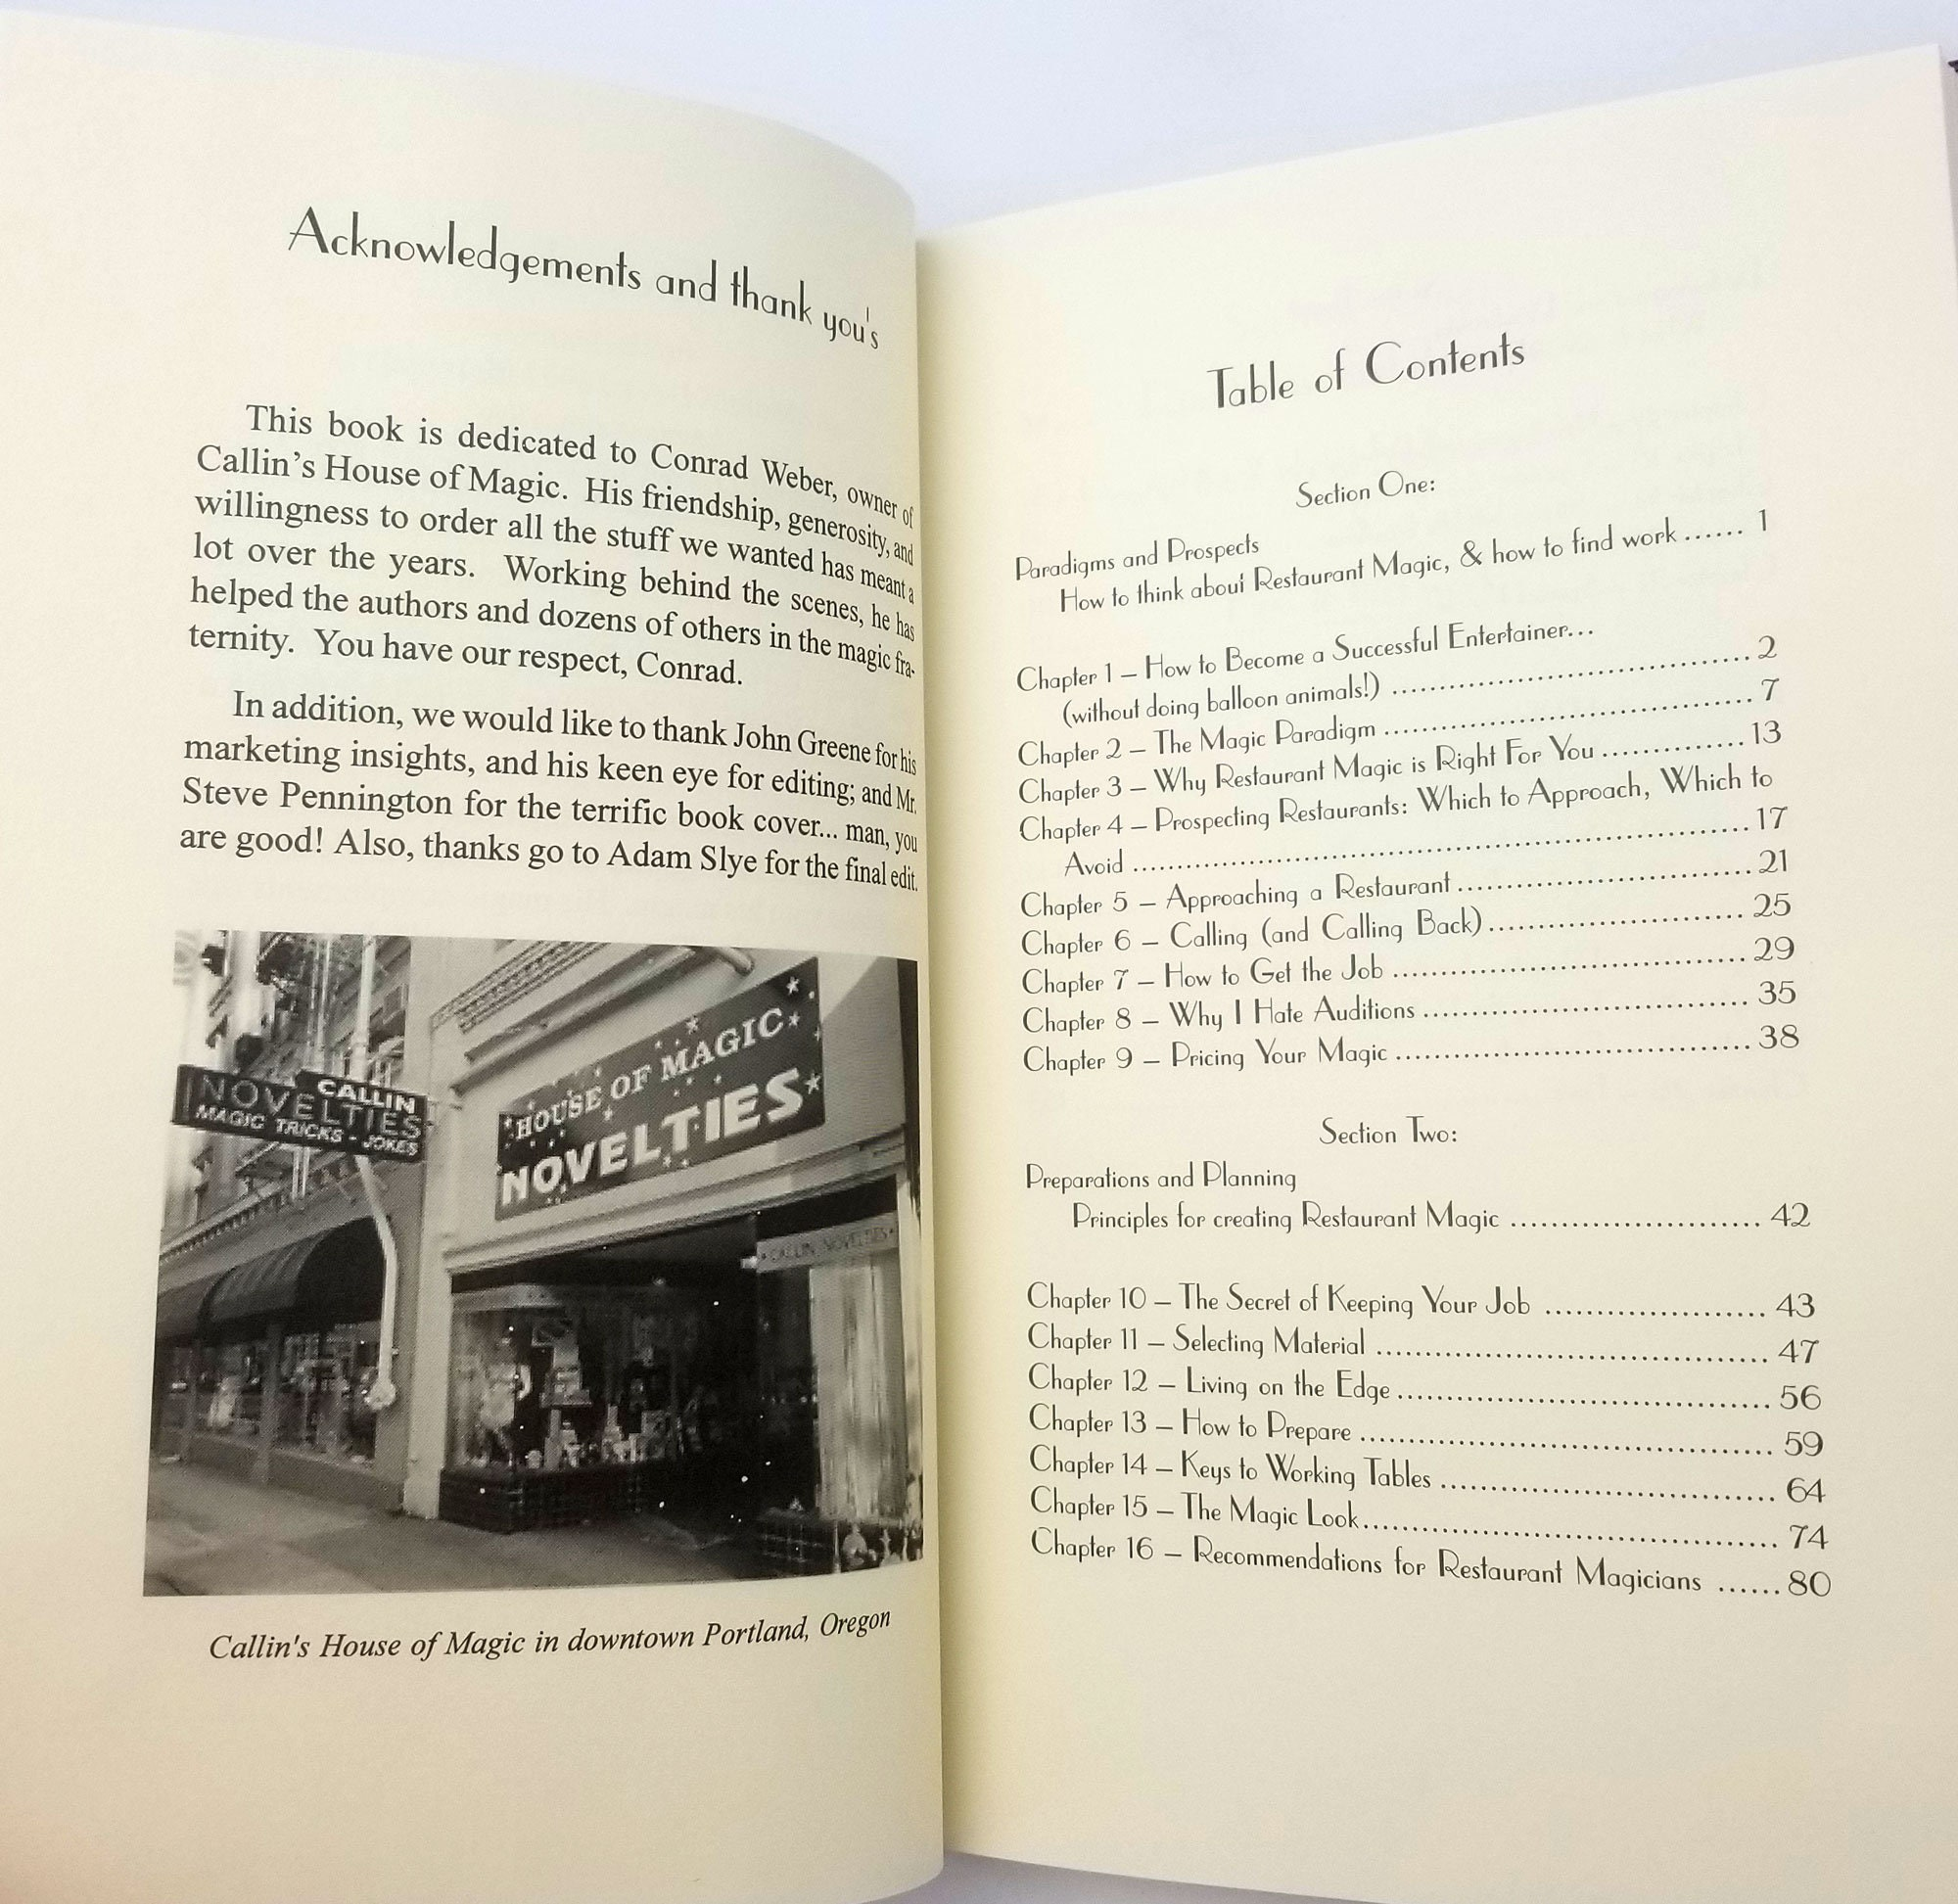 The Restaurant Workers' Handbook: A Practical Guide To